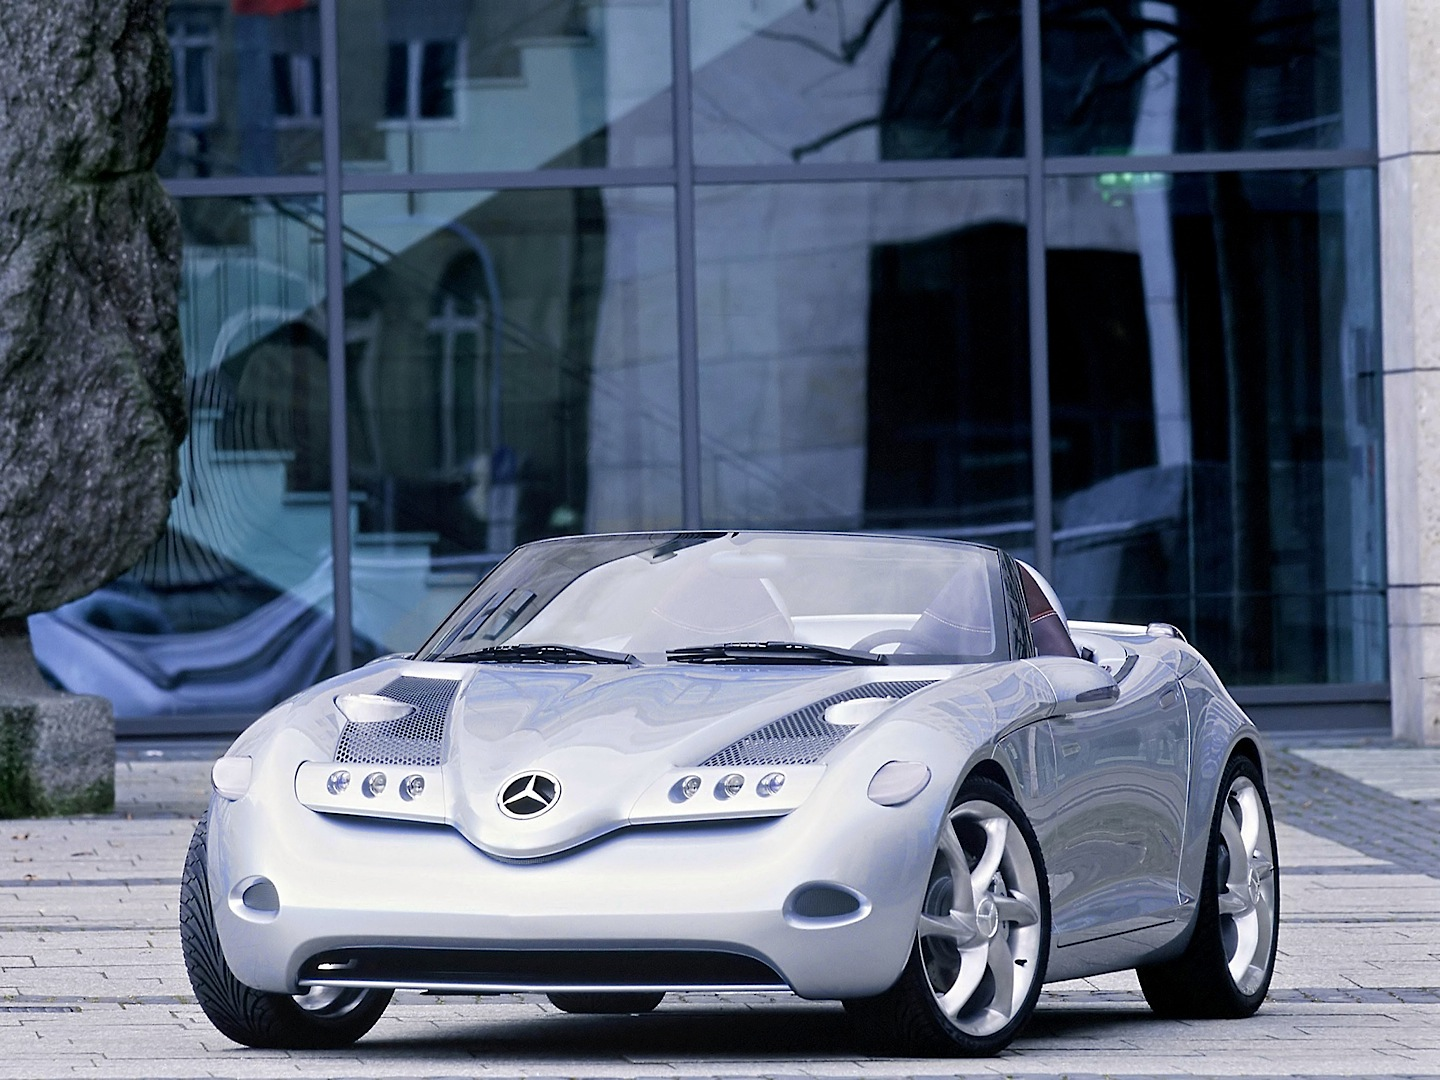 Sla Roadster Project Could Be Back On The Table At